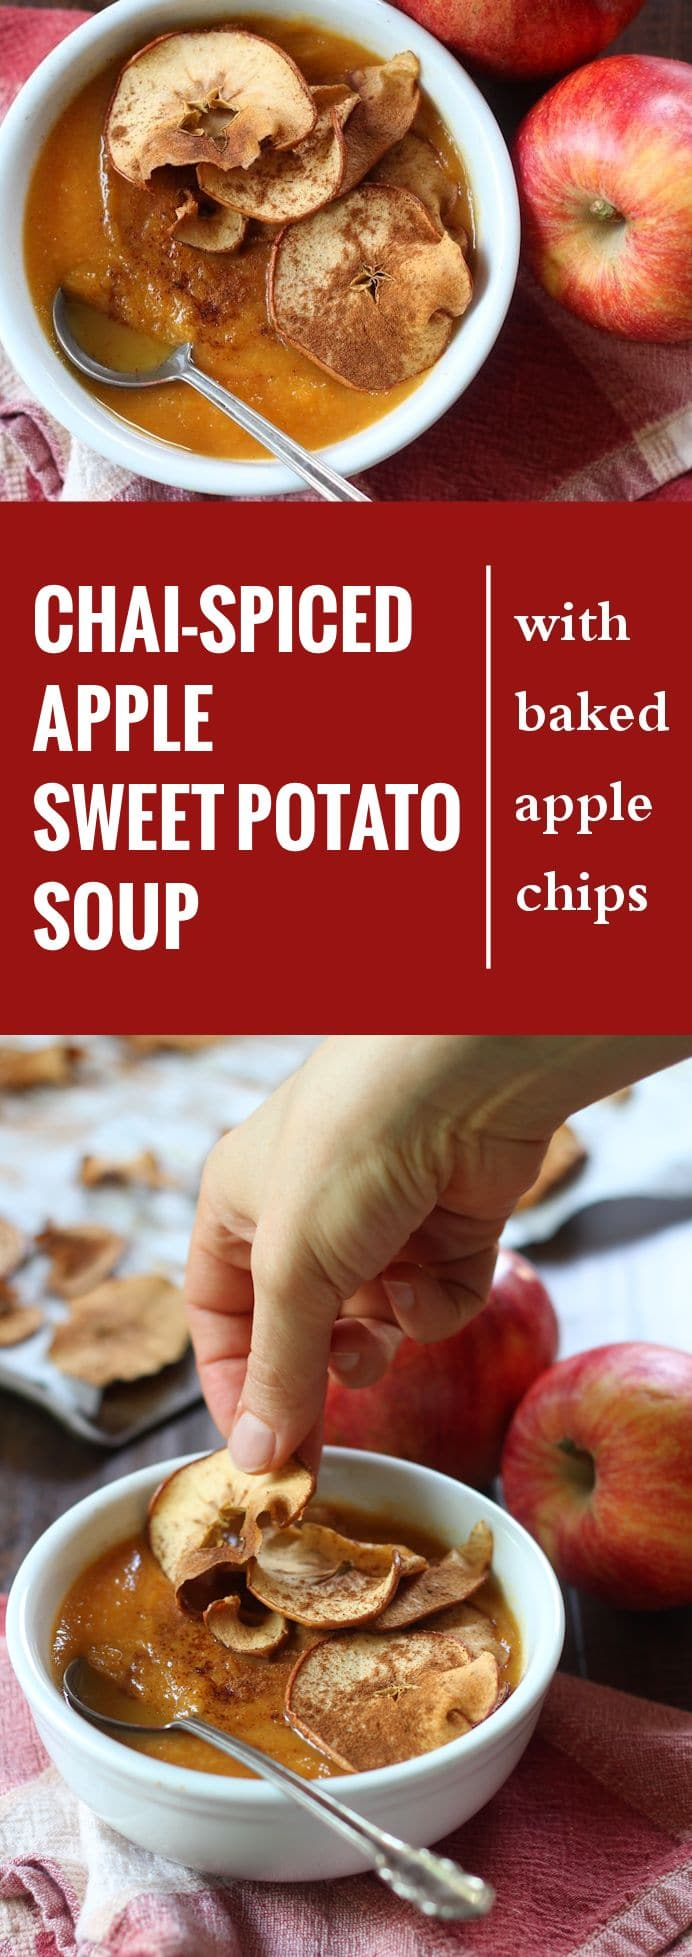 Chai-Spiced Apple Sweet Potato Soup with Apple Chips